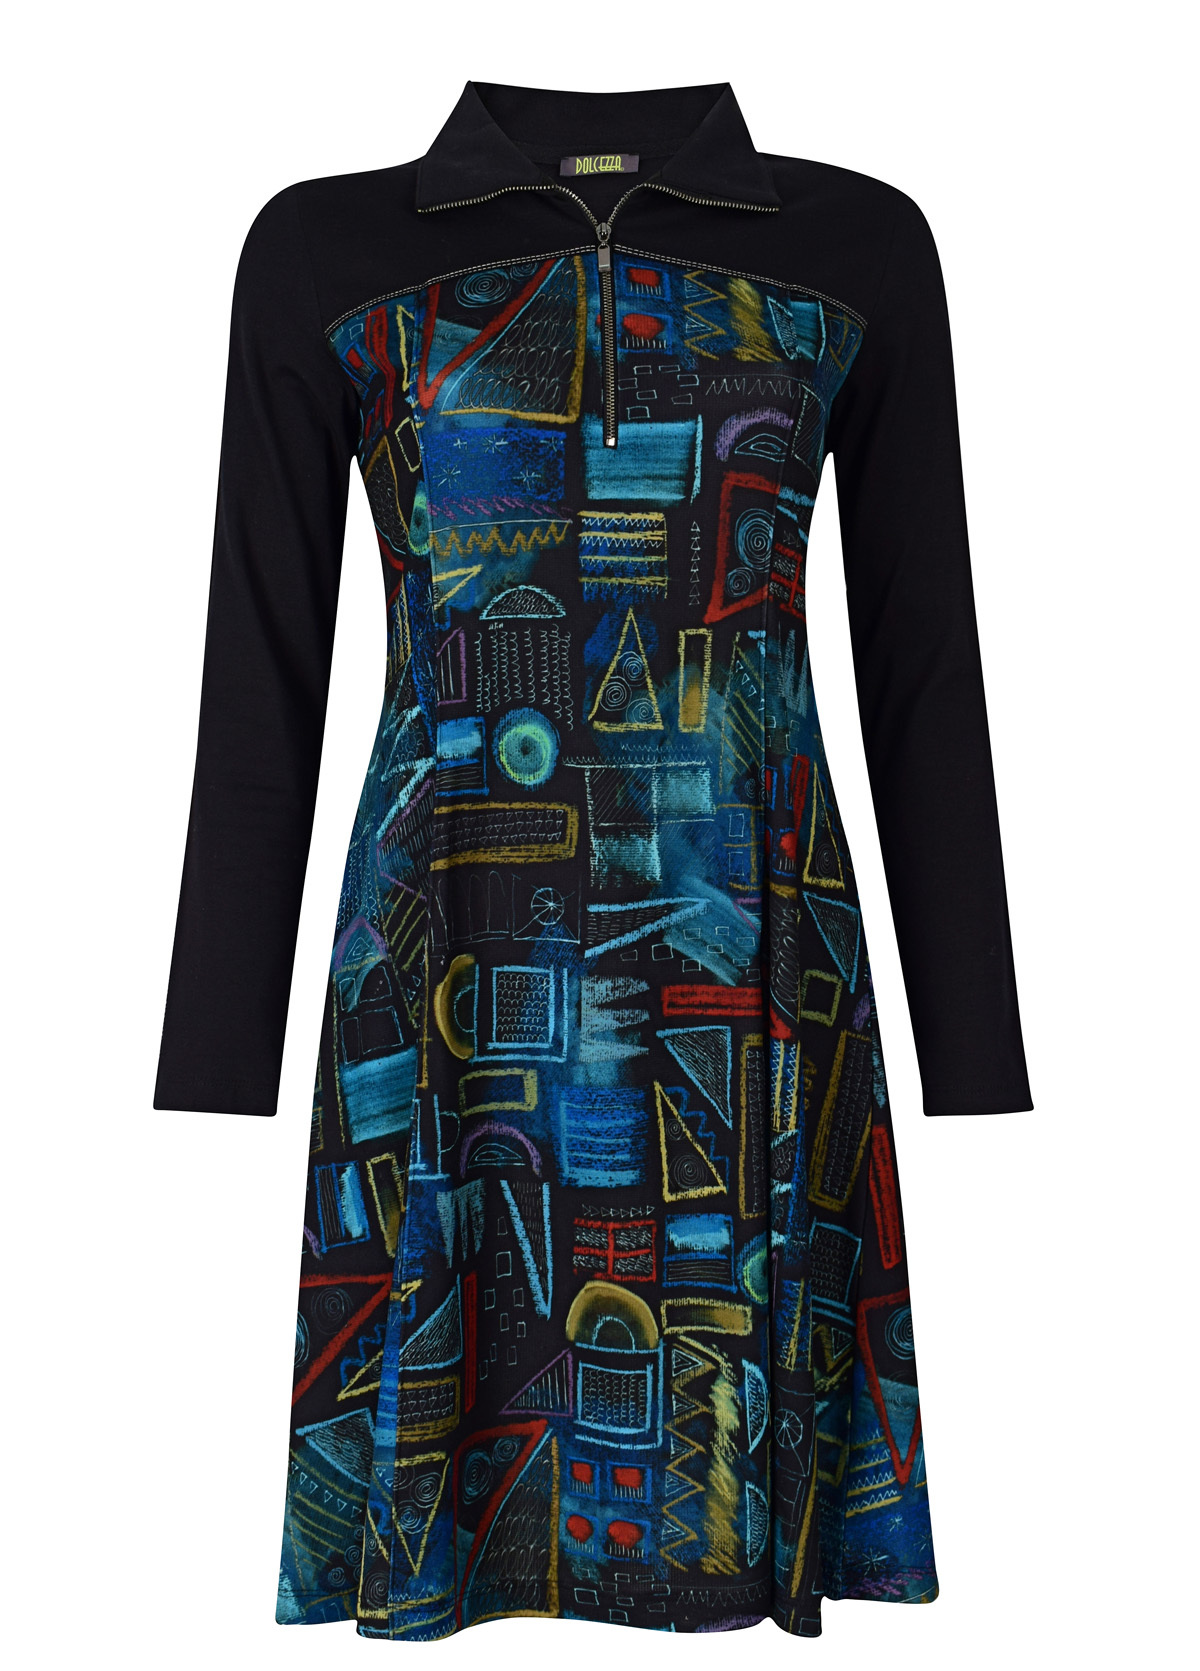 Dolcezza: Chalkboard Geometric Graffiti A-line Dress (1 Left!) Dolcezza_59193